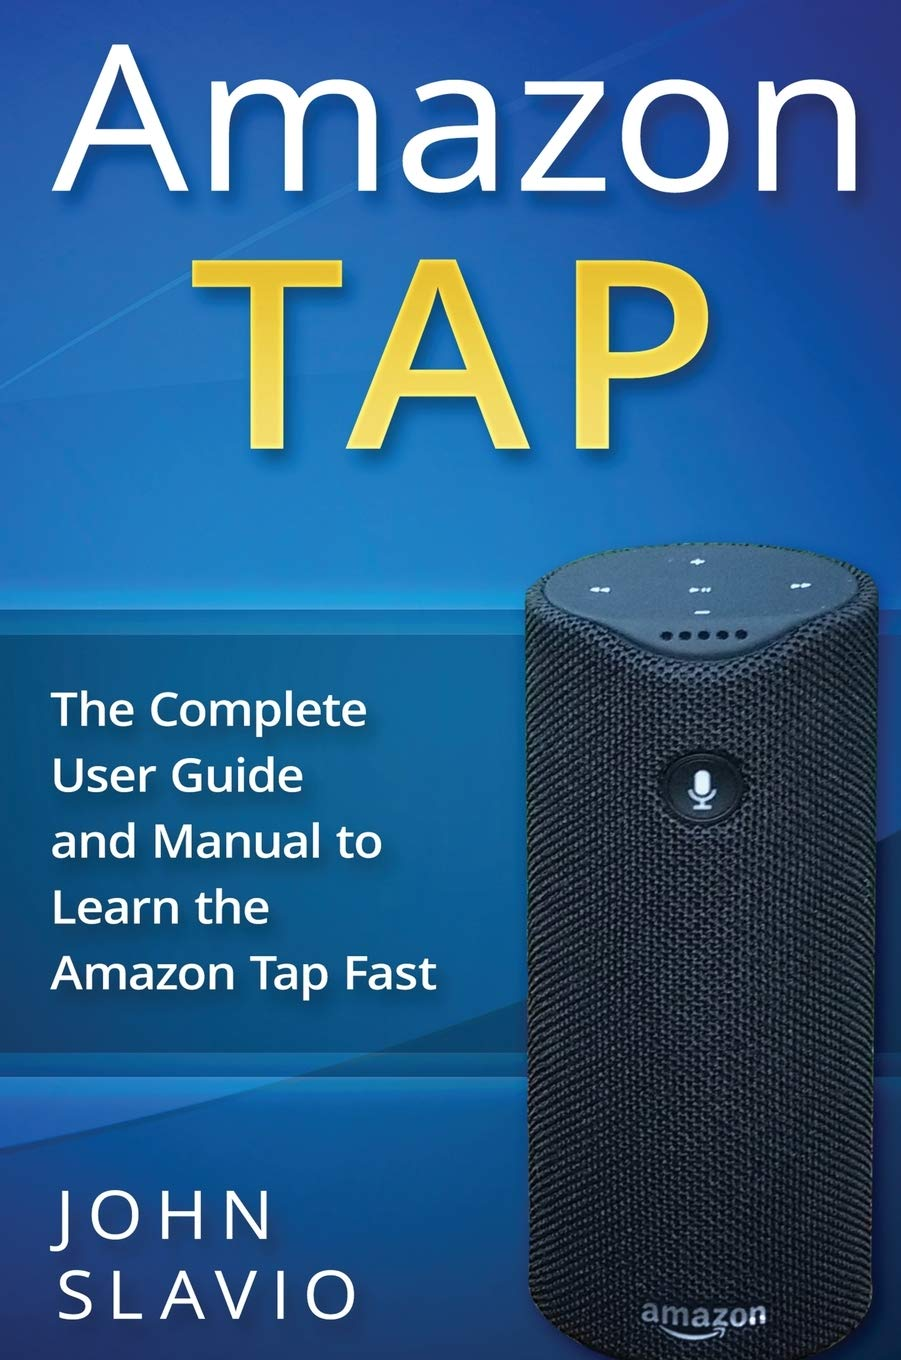 Amazon Tap: The Complete User Guide and Manual to Learn the Amazon